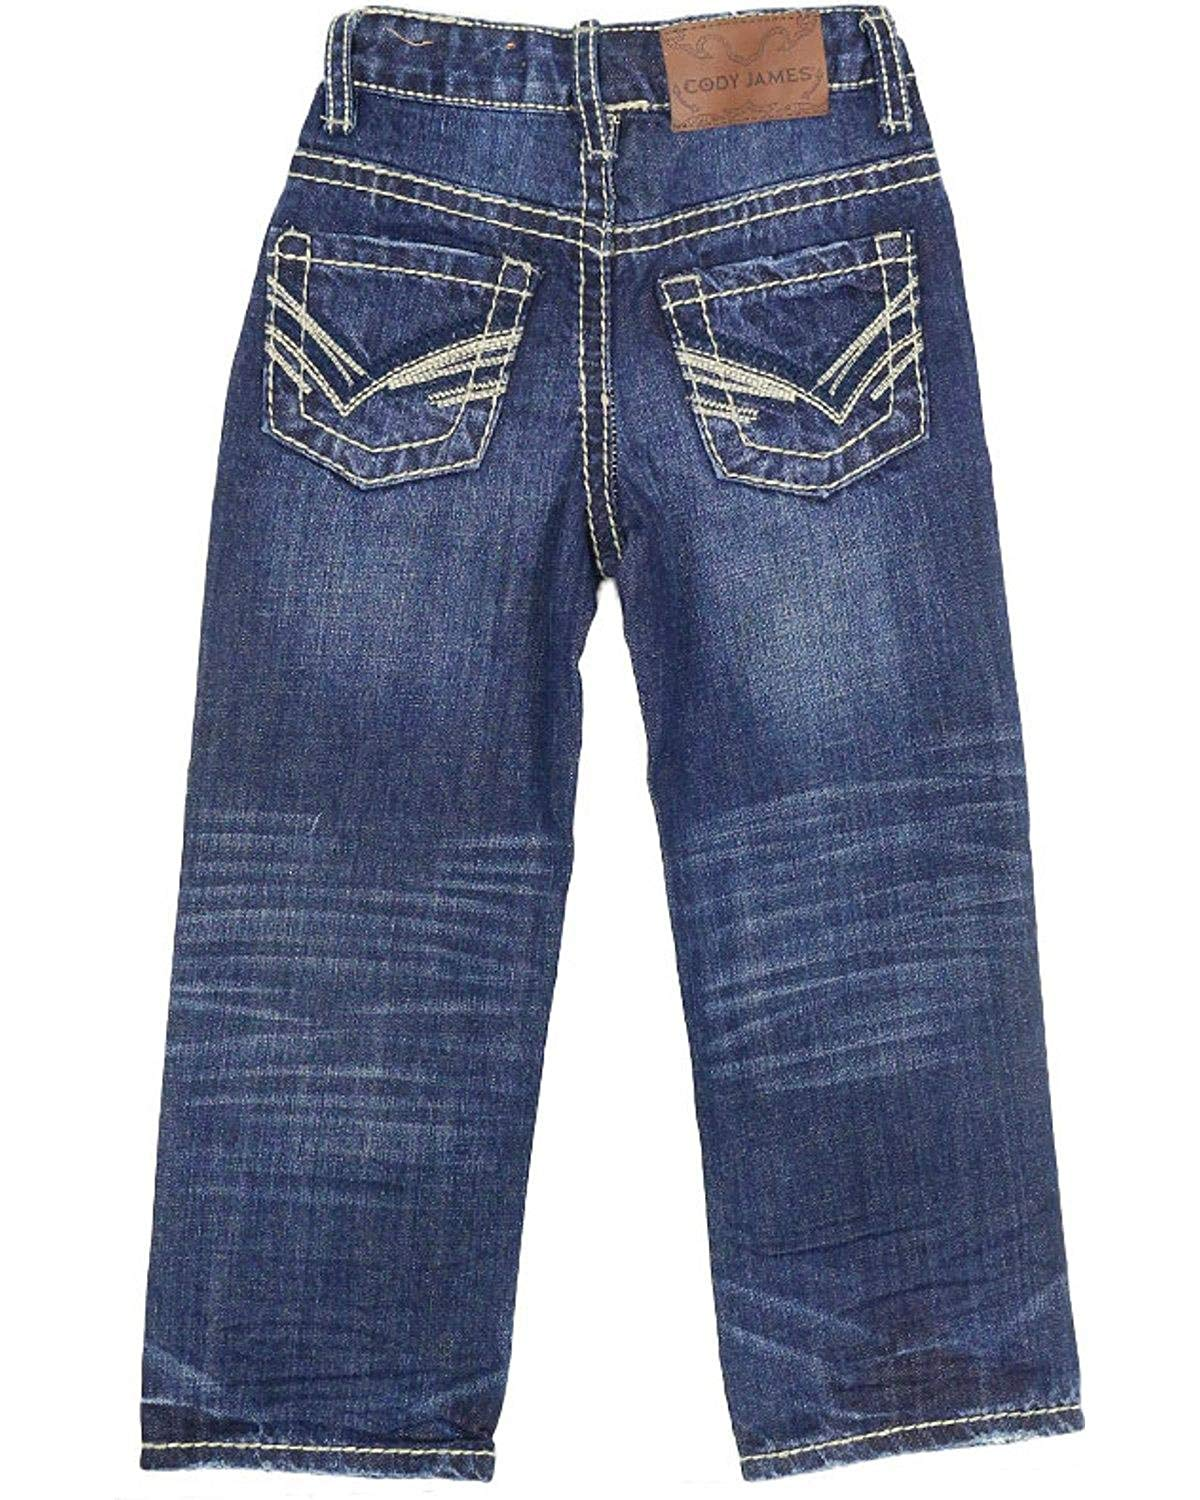 179a3a46000 Cheap Jeans 505, find Jeans 505 deals on line at Alibaba.com